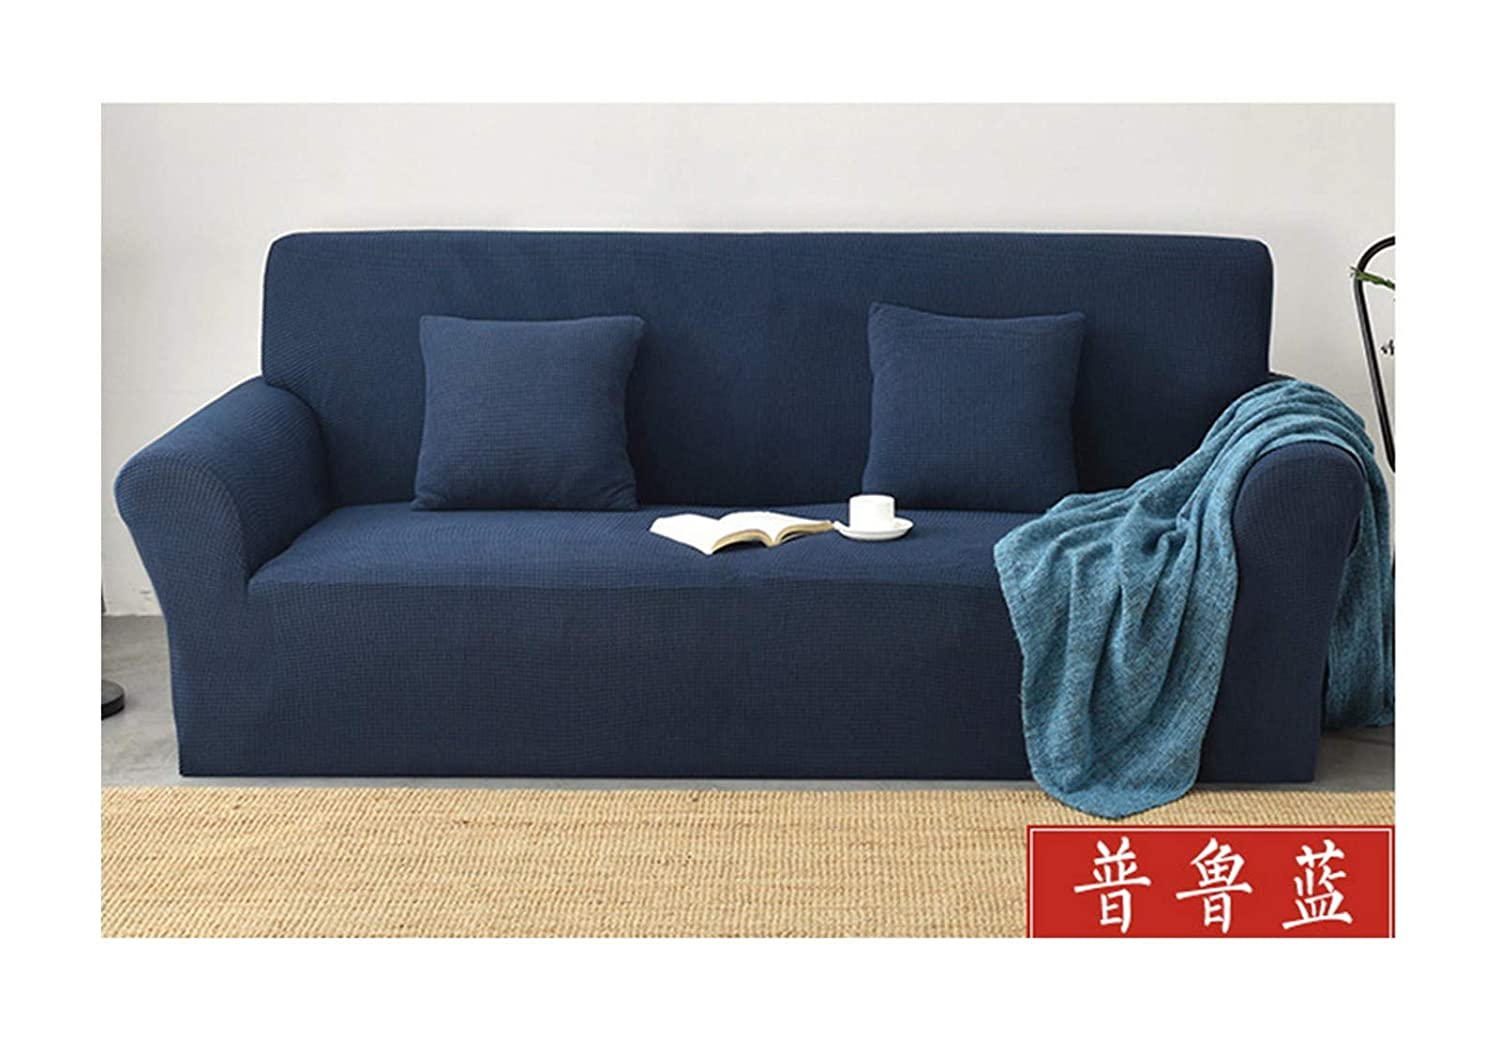 4seat VGUYFUYH bluee Knitted Lazy Sofa Cover Polyester Full Package Elastic SlipProof Home Universal Sofa Cover Simple Fashion One Set Durable DustProof Pet Dog Predective Cover,4Seat